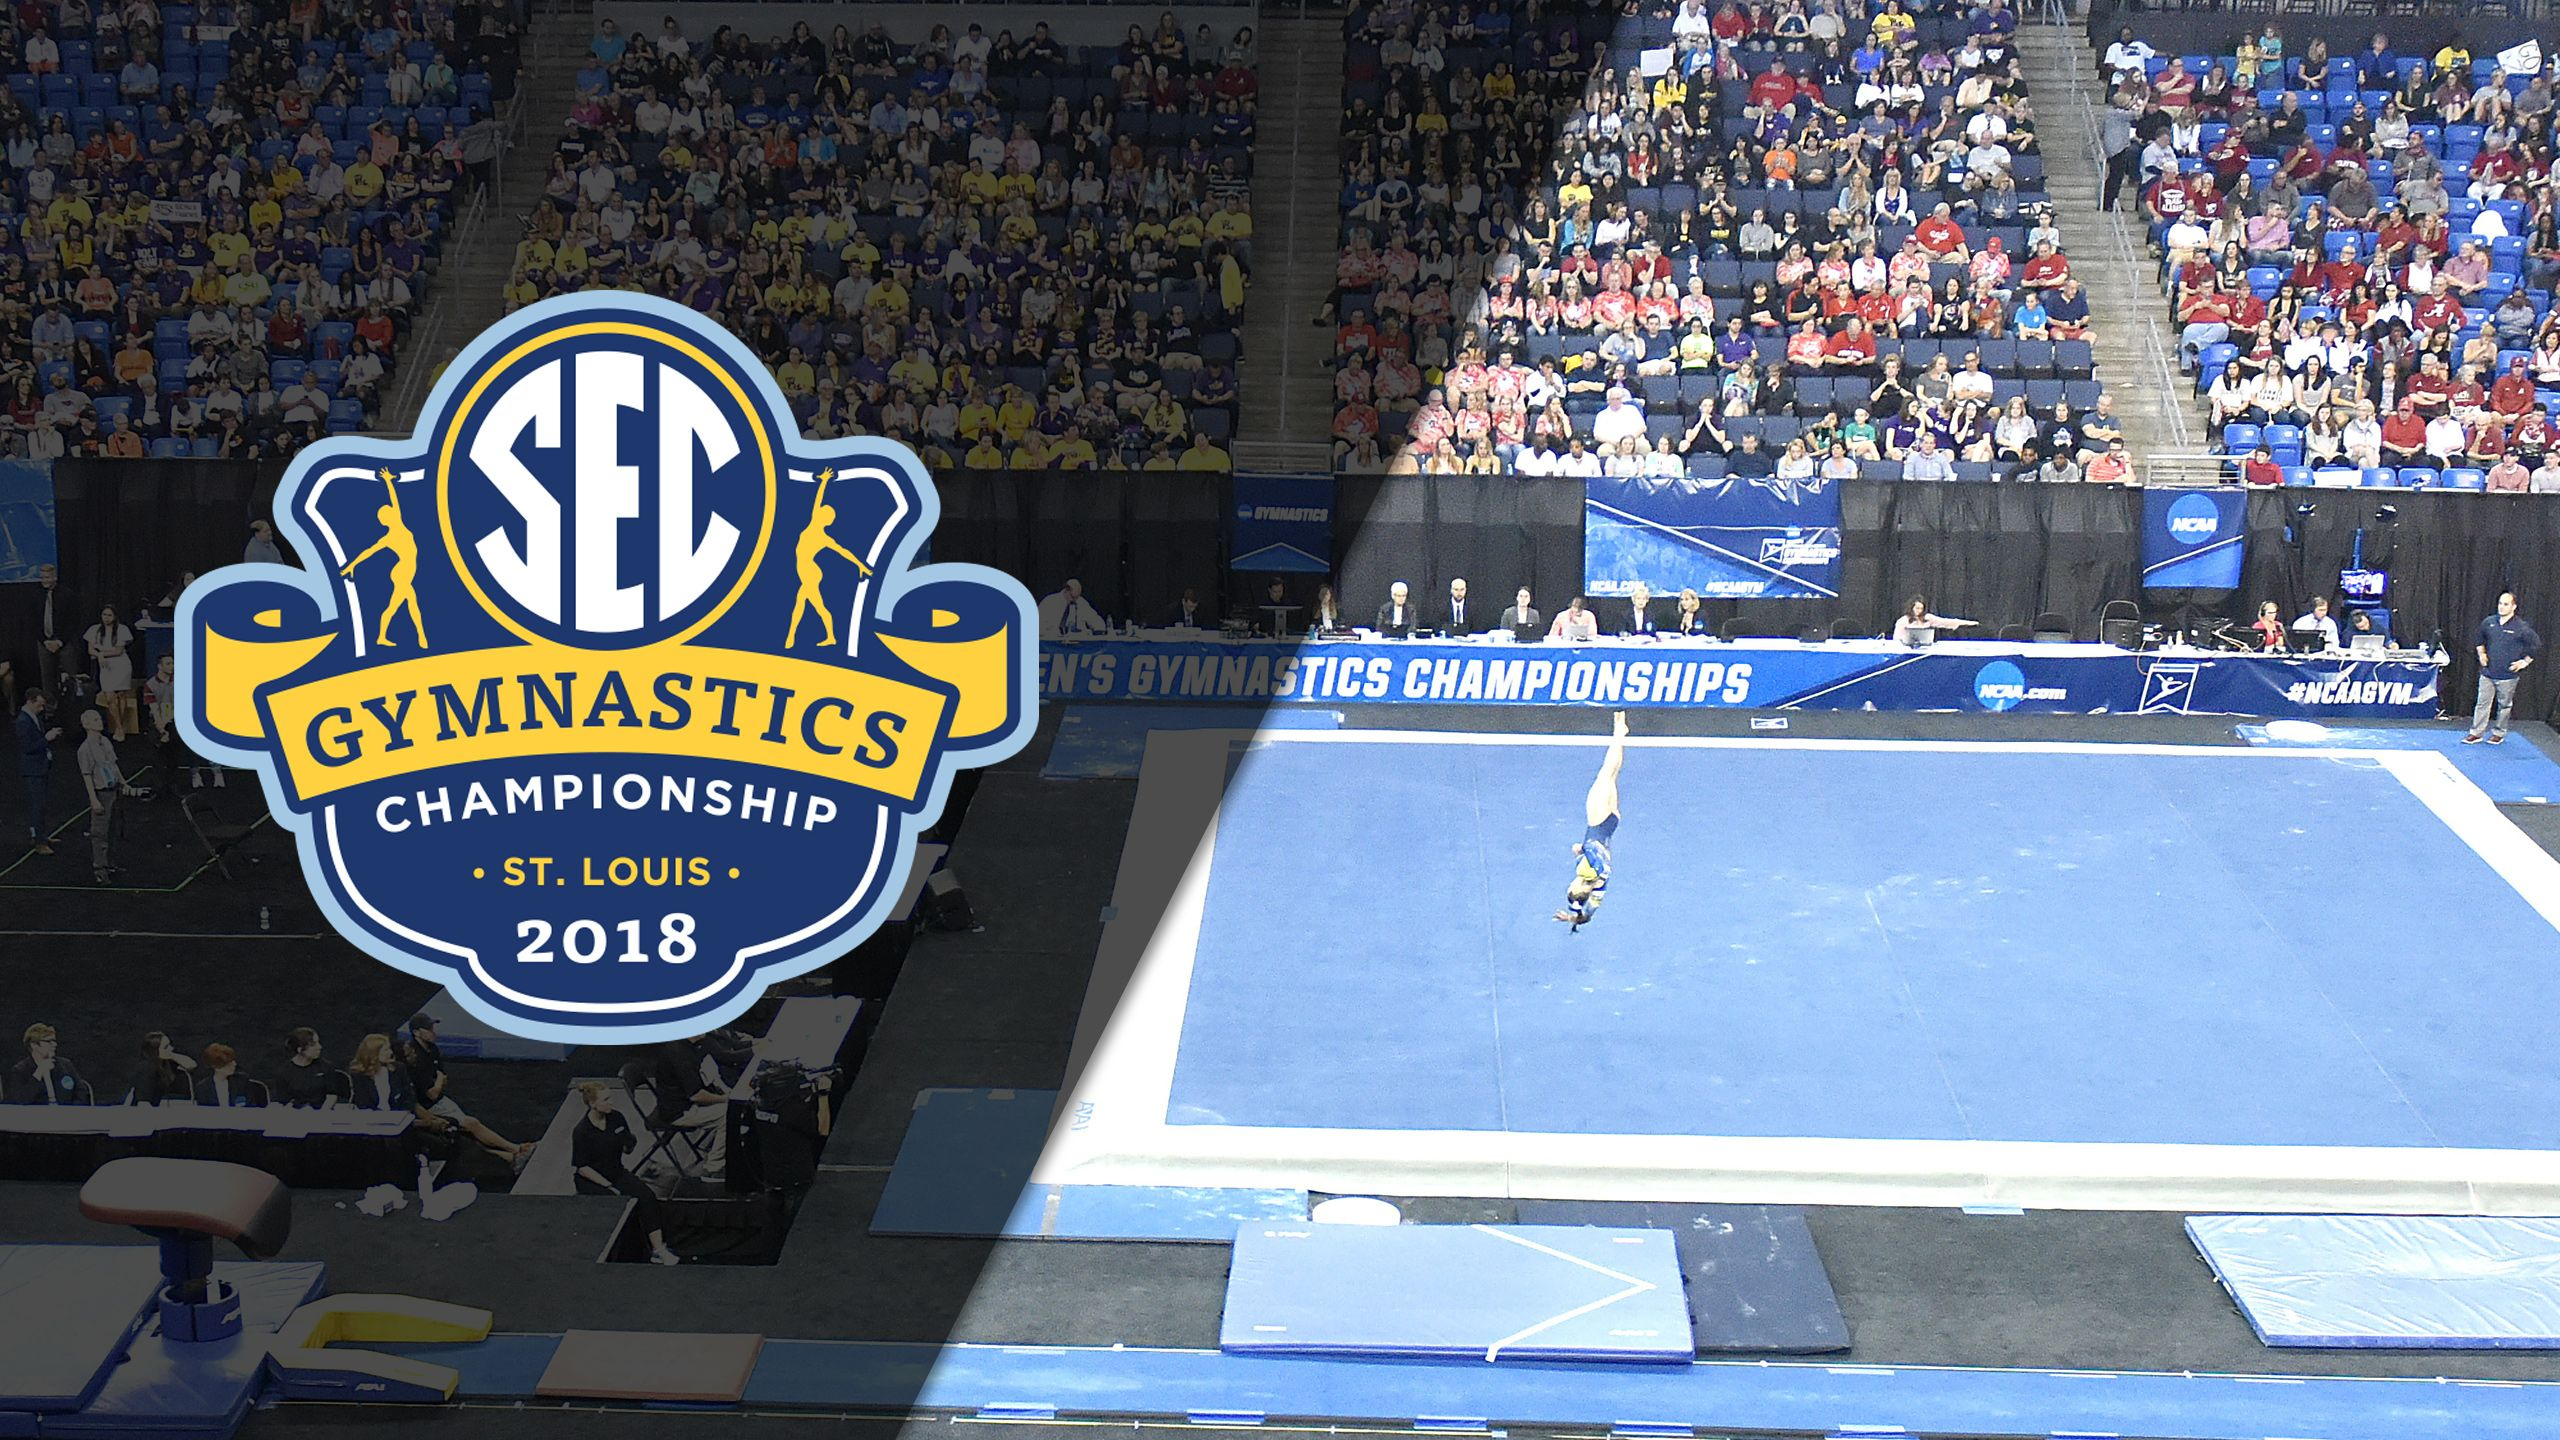 SEC Gymnastics Championship - Floor (Evening Session)